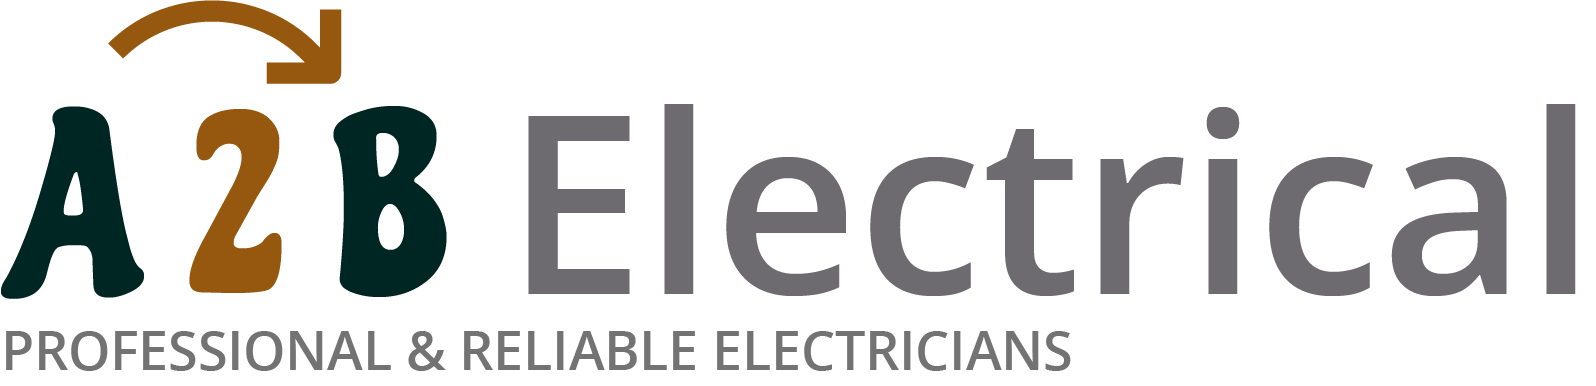 If you have electrical wiring problems in Benfleet, we can provide an electrician to have a look for you.